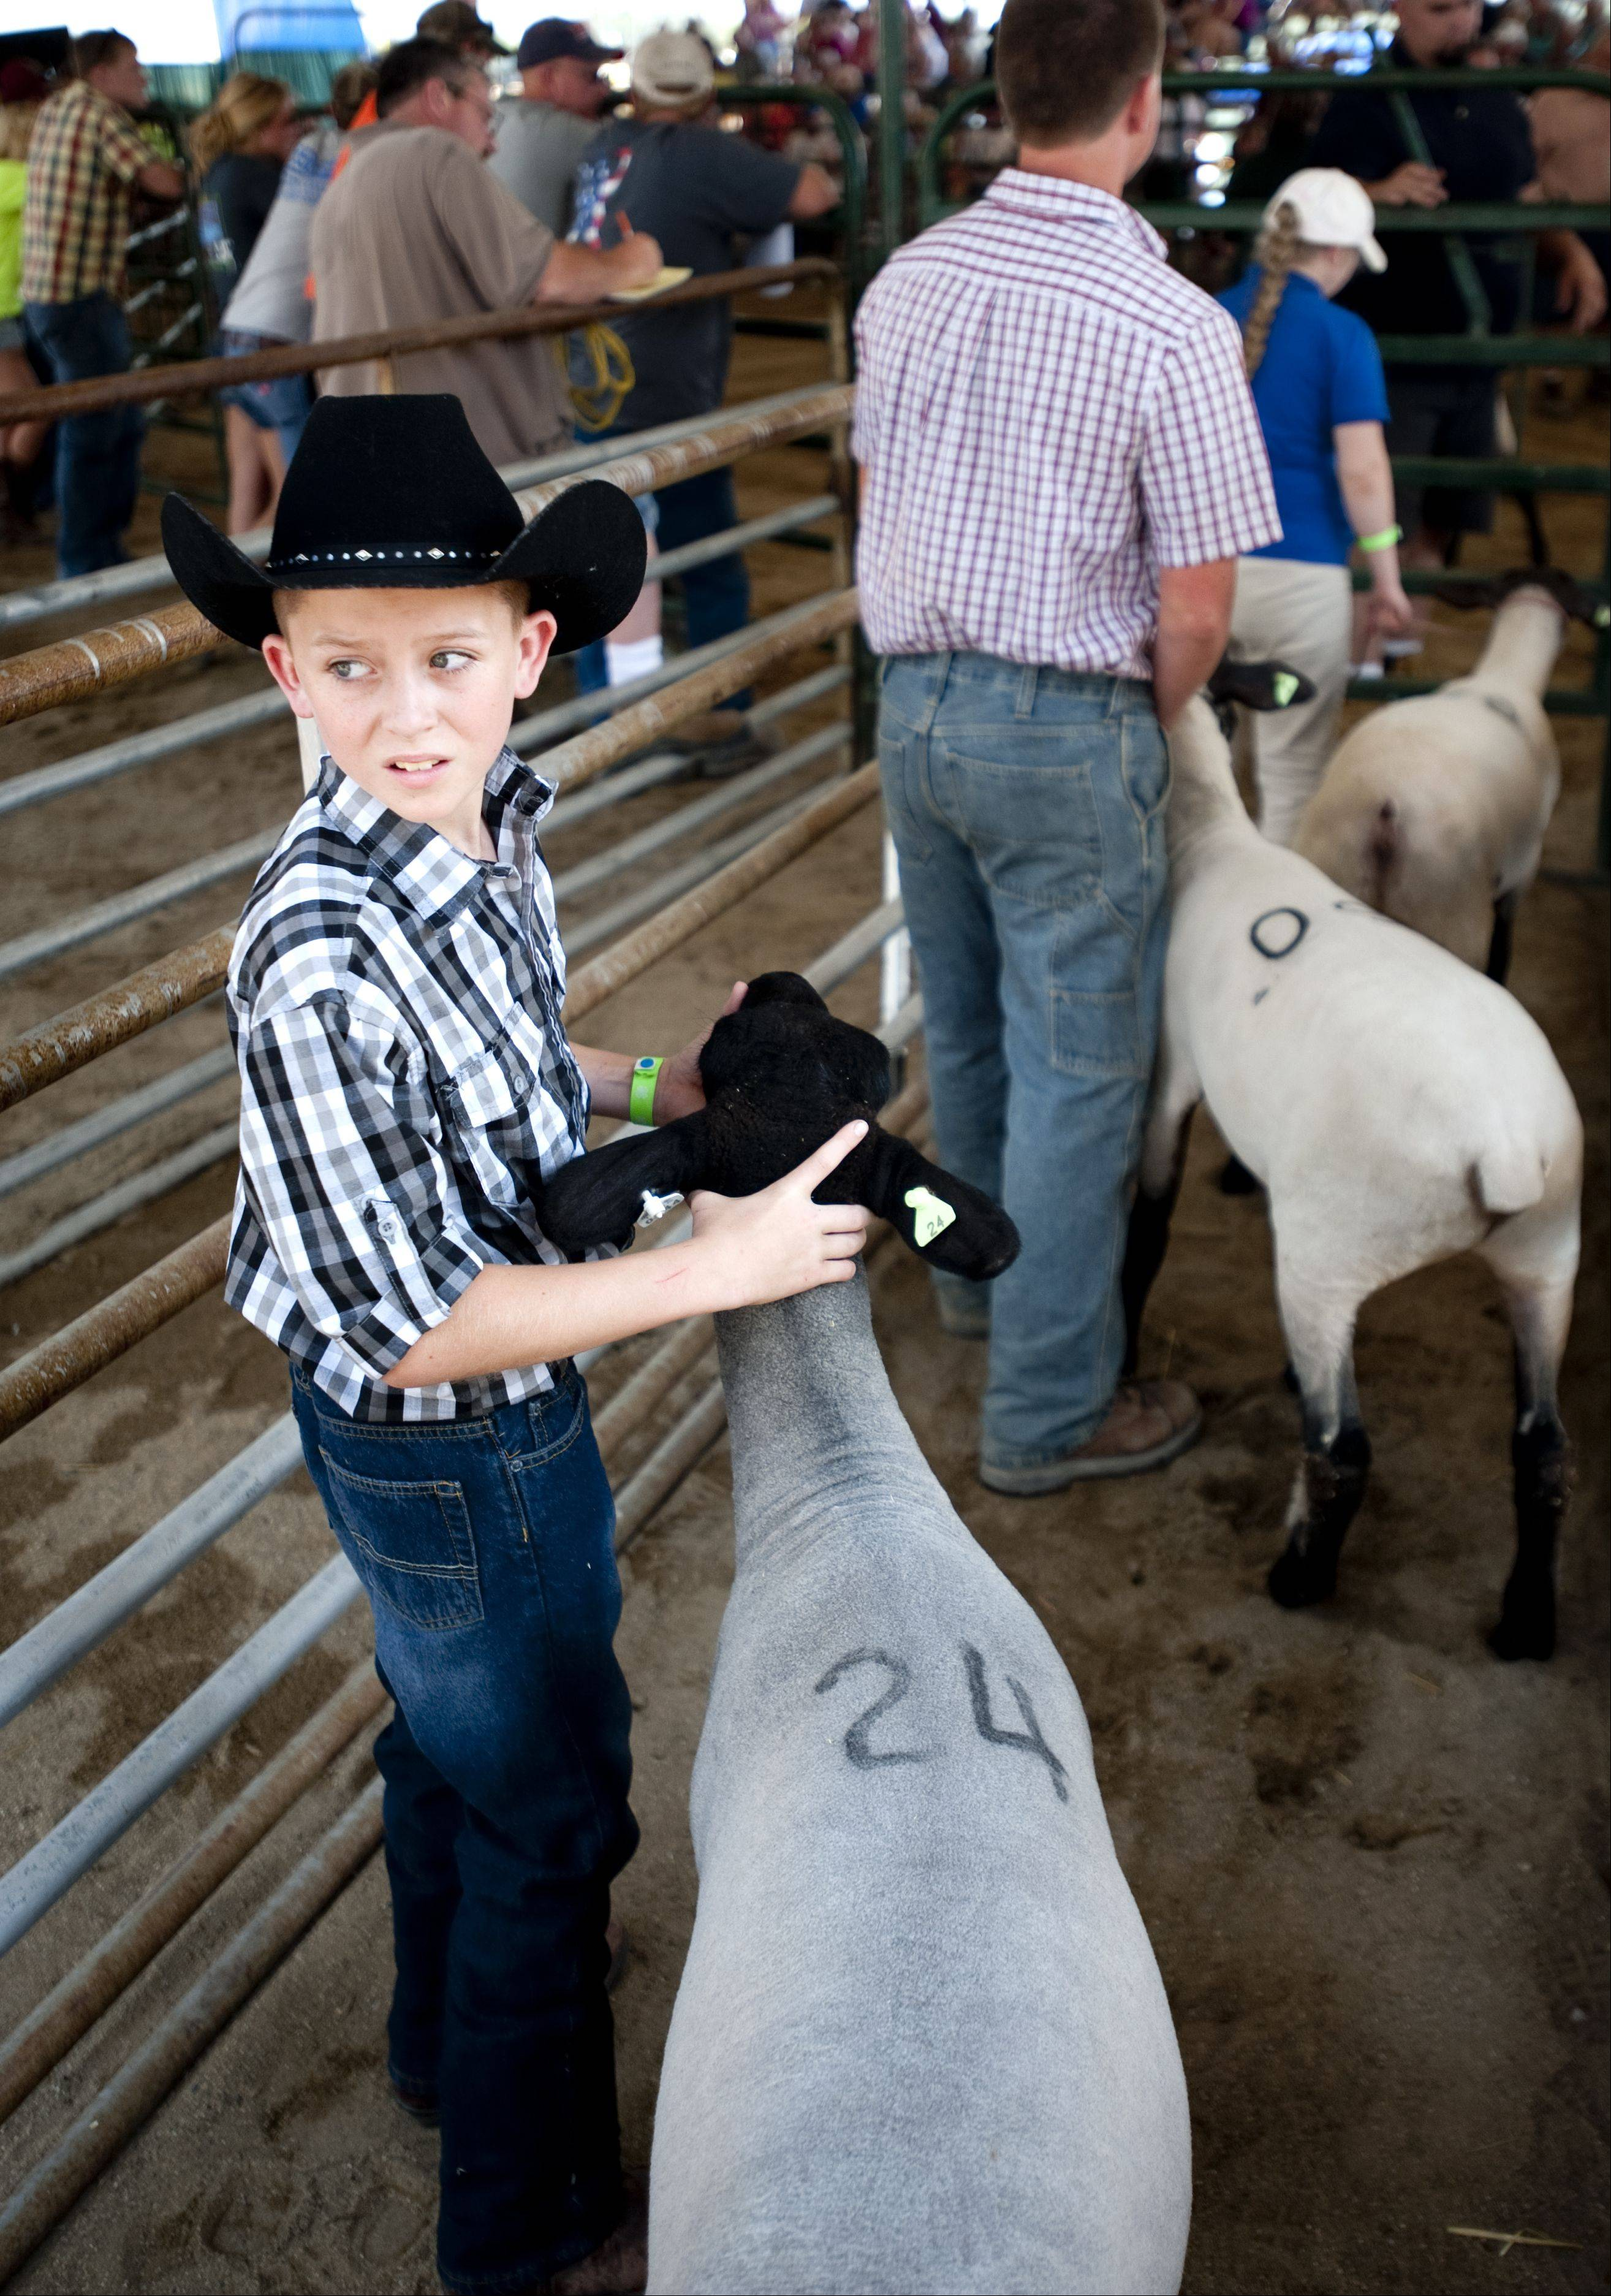 Austin Gratz, 10, of Harvard gets ready to show his sheep at the 4-H Livestock Auction and Sale of Champions at last year's McHenry County Fair in Woodstock.